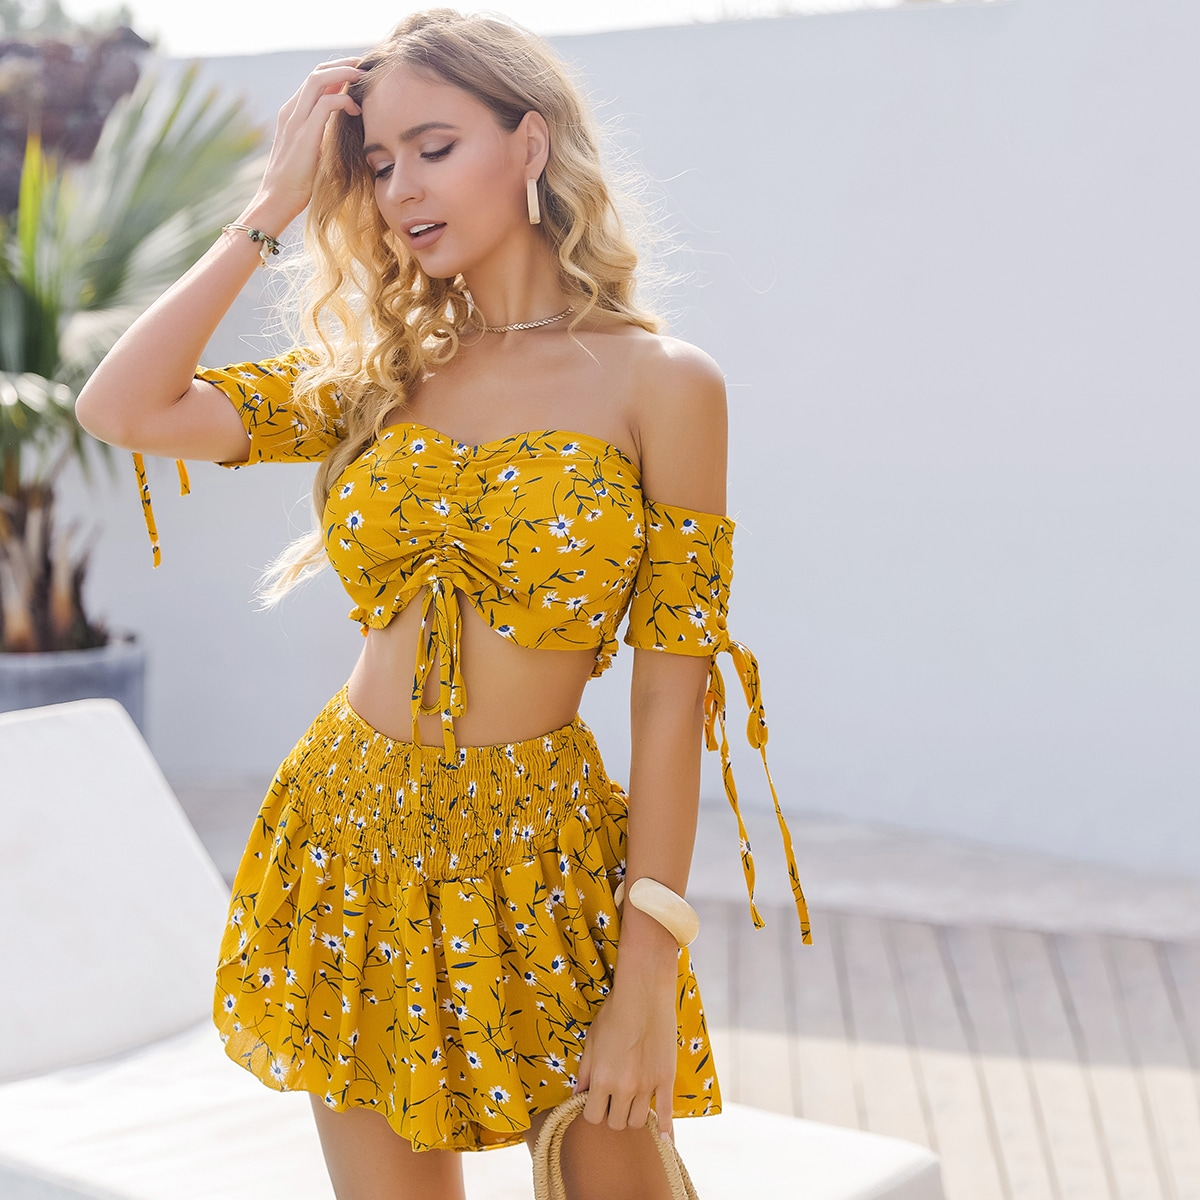 Floral Drawstring Crop Top With Shorts